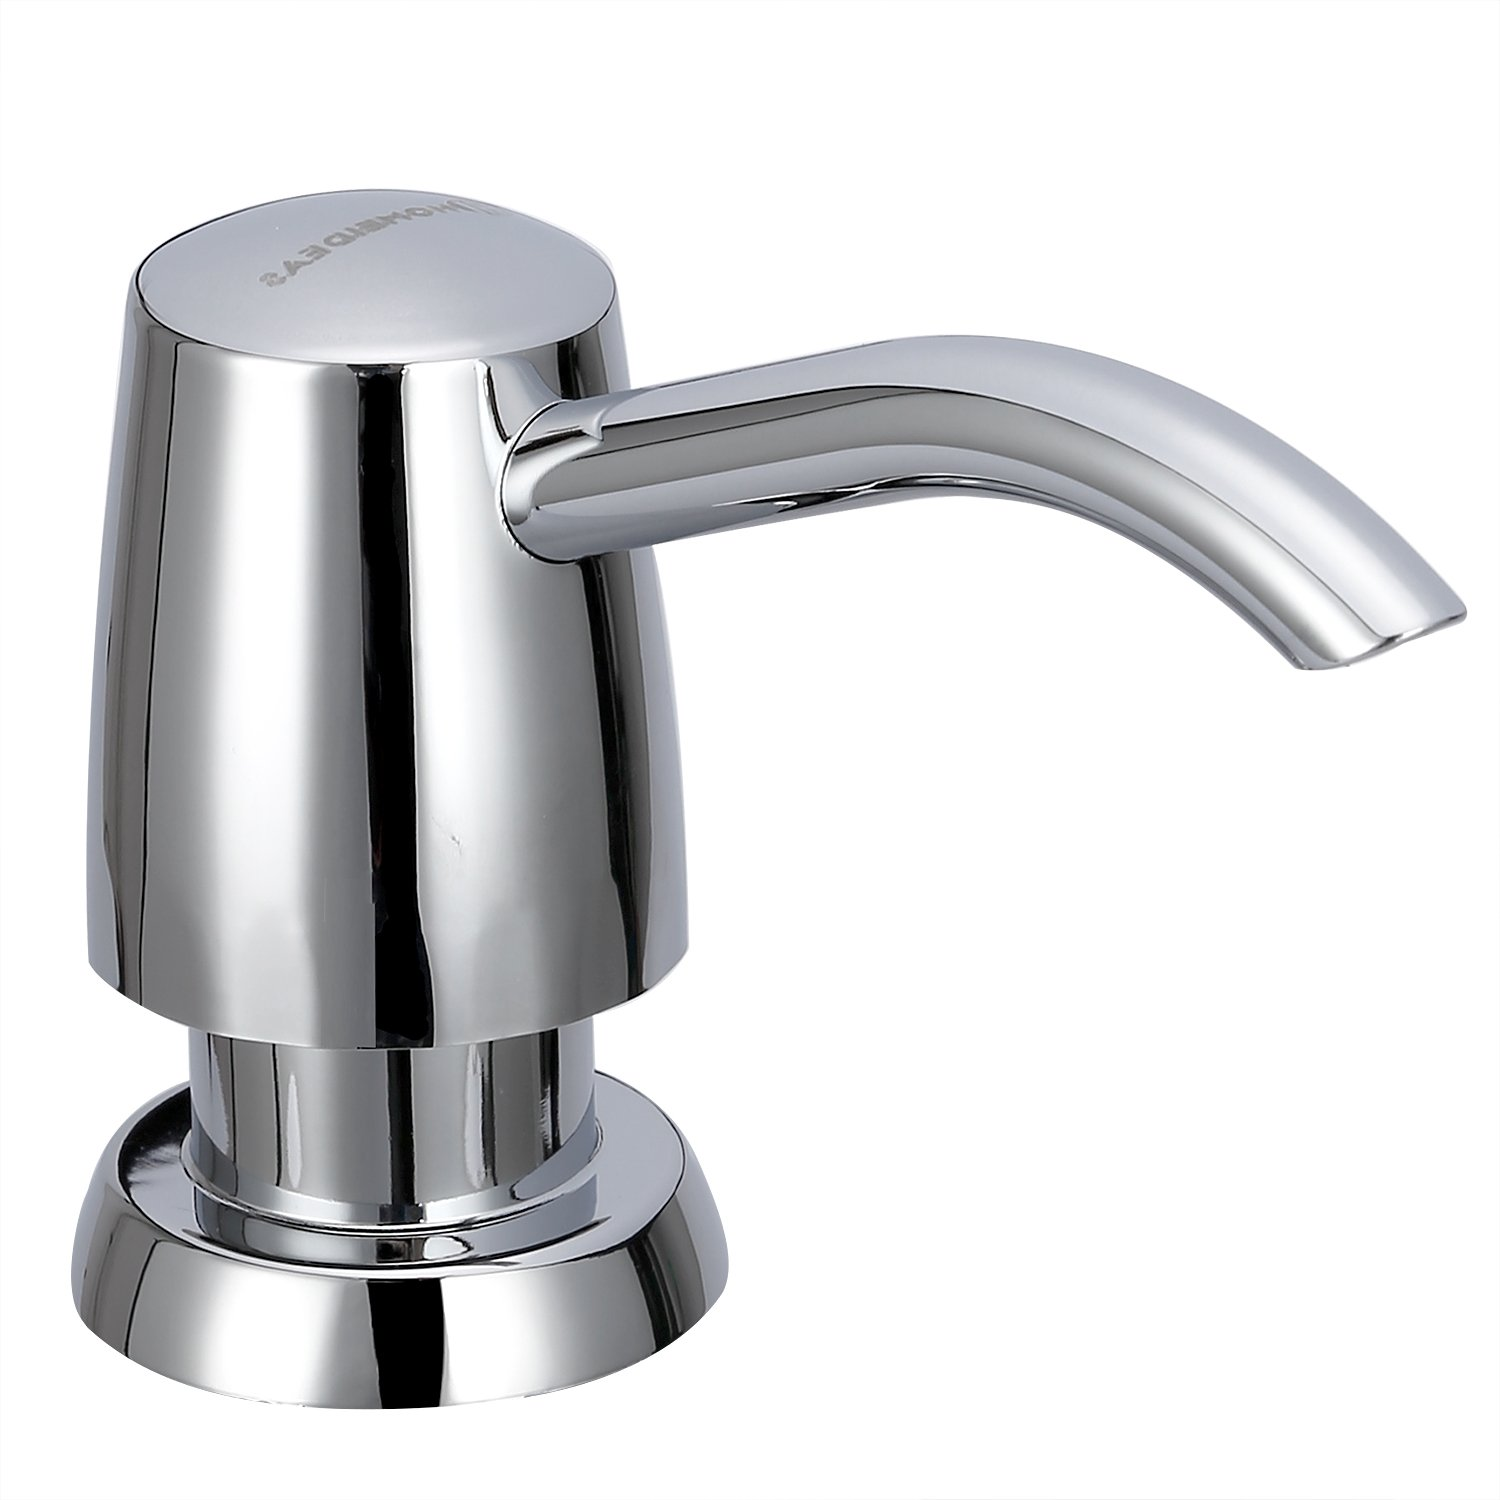 HOMEIDEAS Kitchen Sink Soap Dispenser ABS Plastic Pump with 11oz Clear Sturdy Bottle, ABS Chrome Finished by HOMEIDEAS